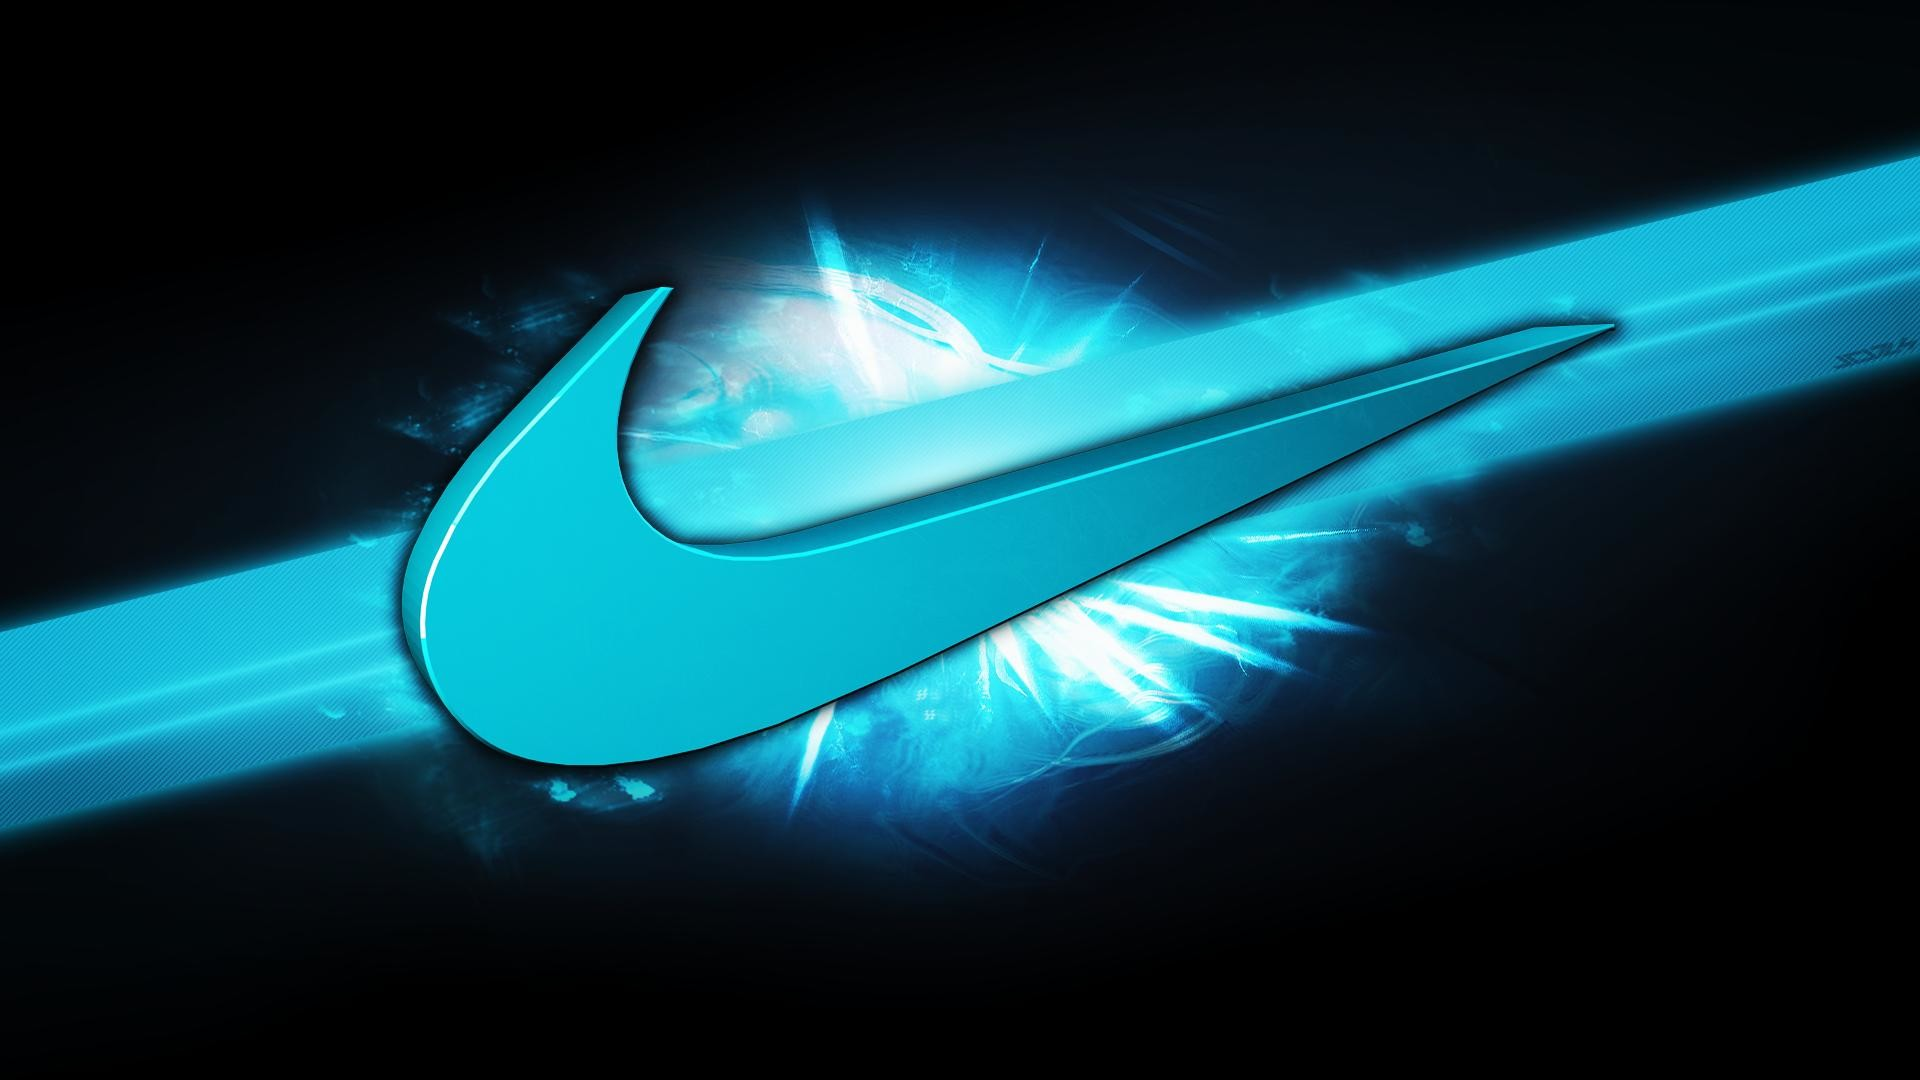 cool-nike-1920×1080-Need-iPhone-S-Plus-Background-